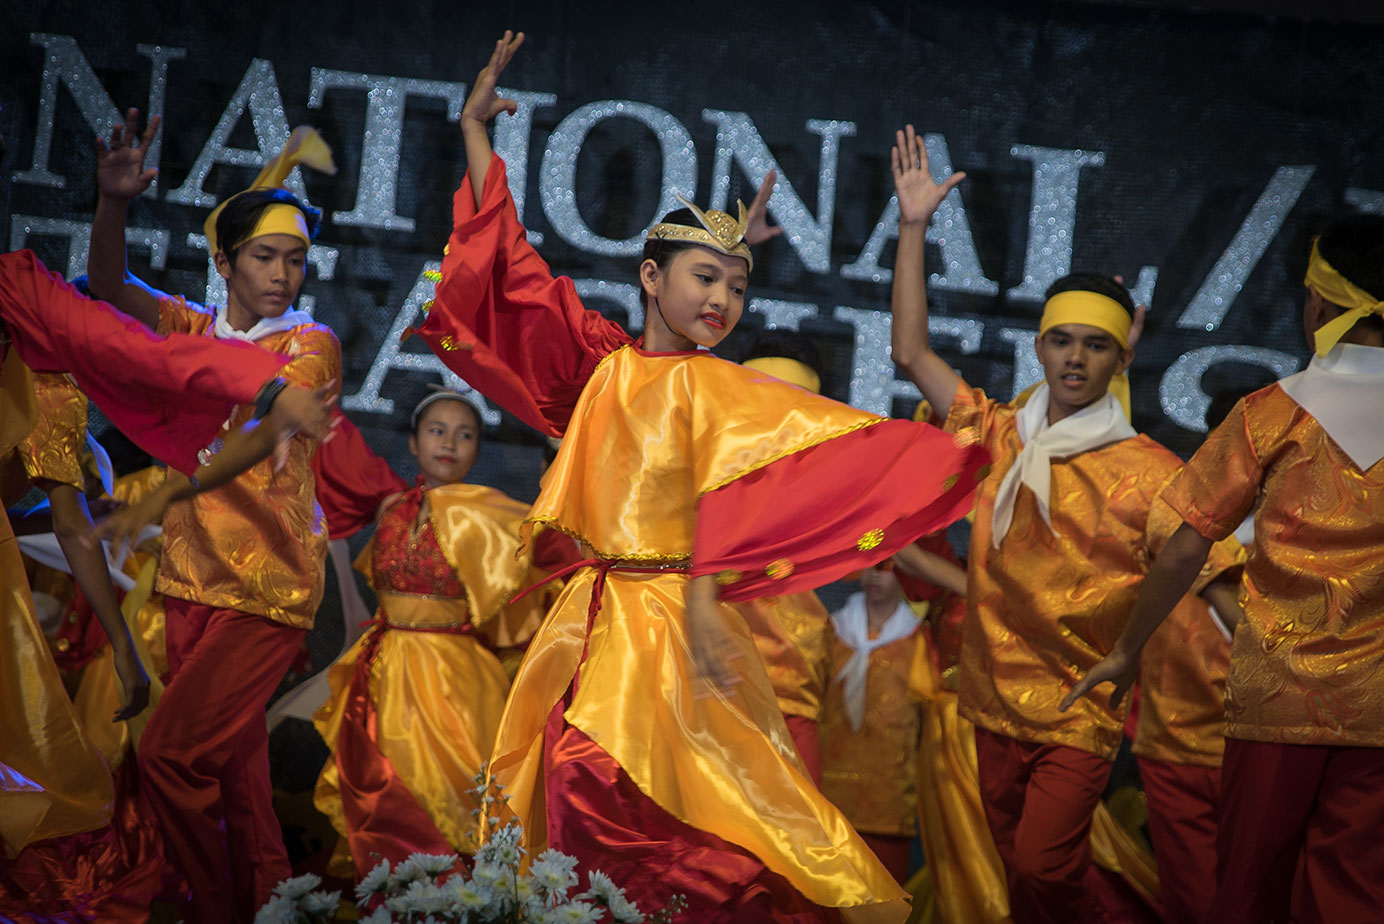 TRIBUTE. Students from Legazpi City showcase the region's festivities through dance and music. All photos by Vee Salazar/Rappler